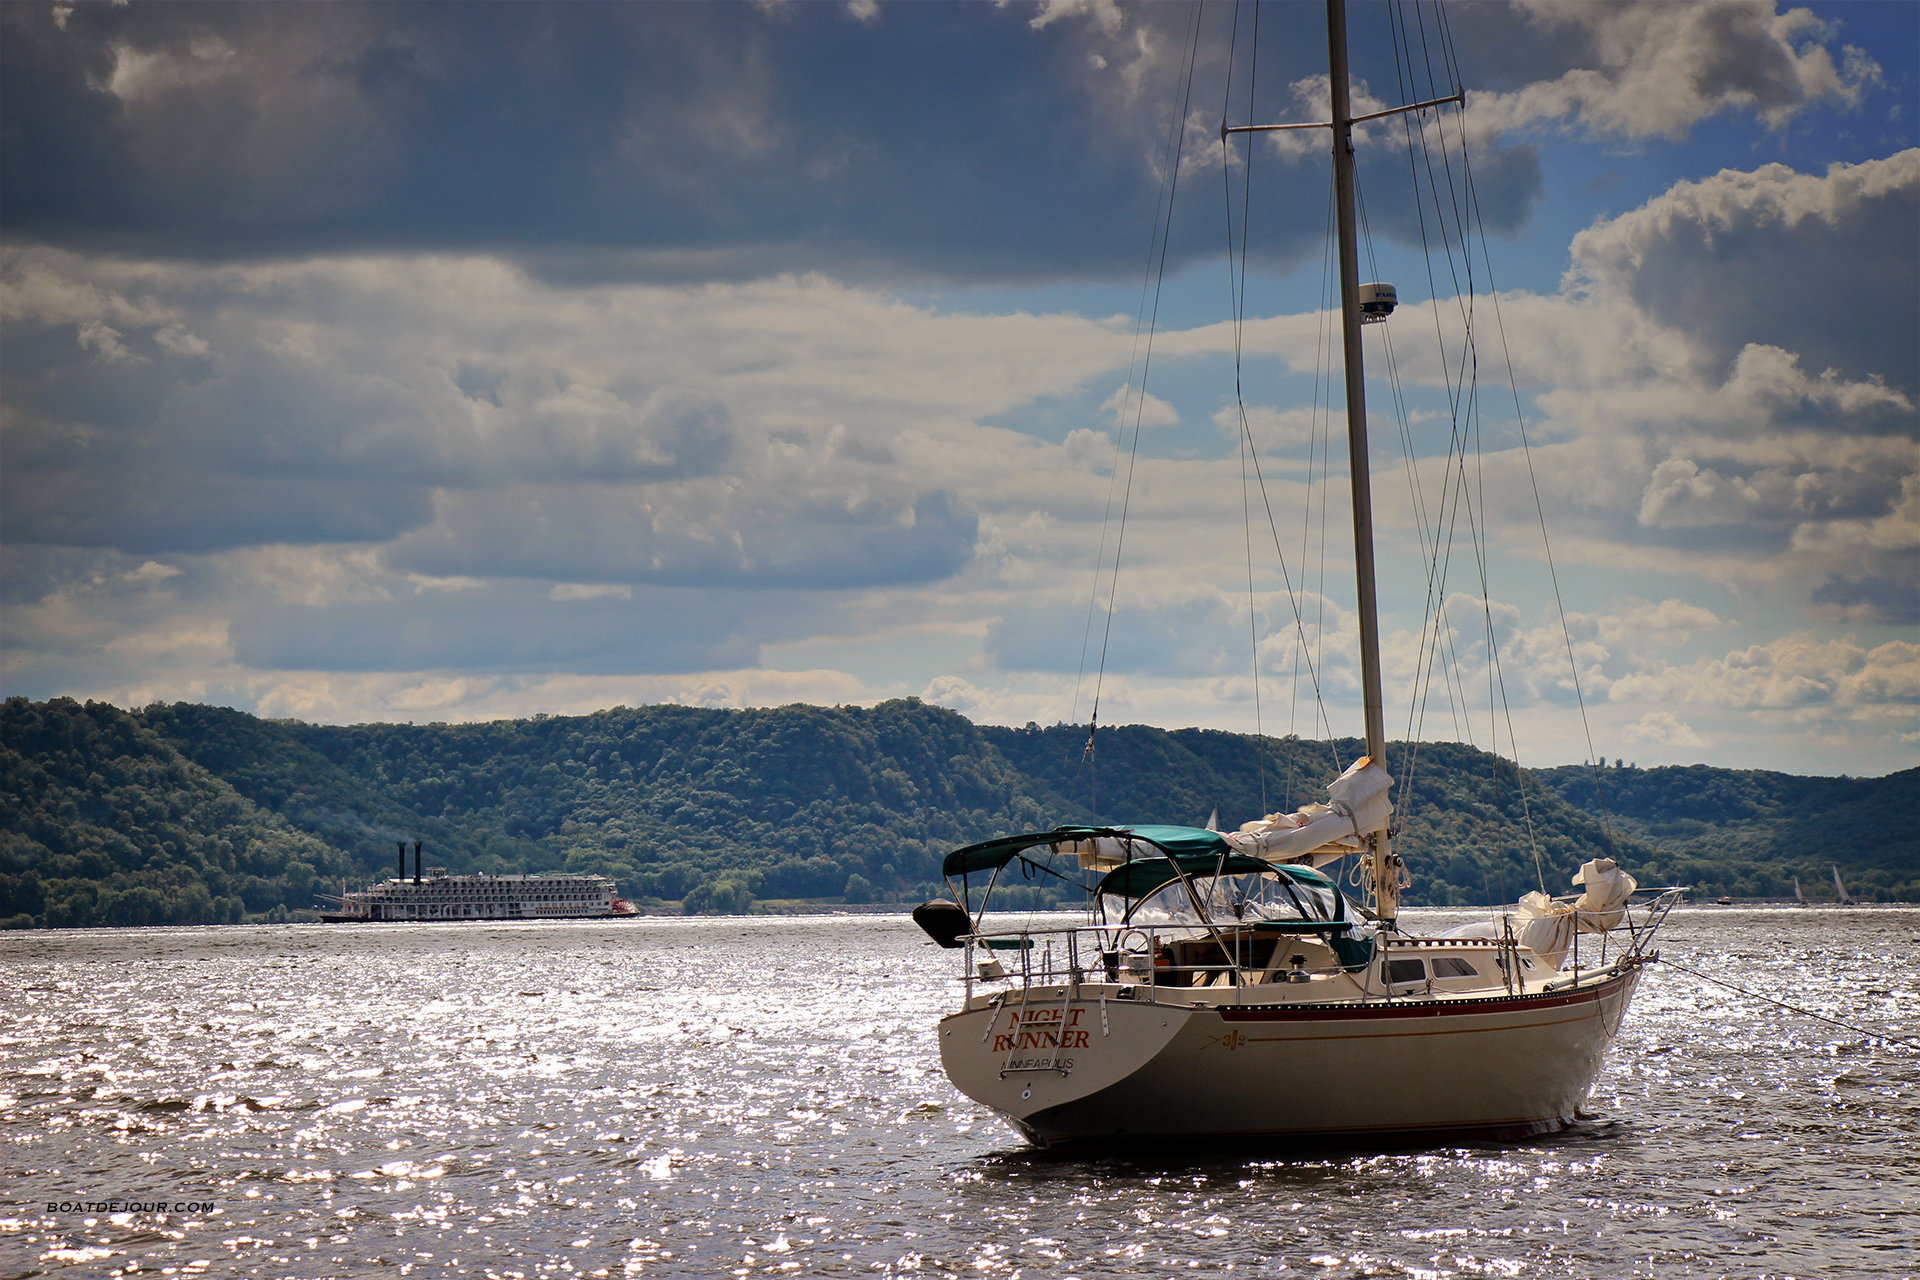 Islander 32 on Lake Pepin